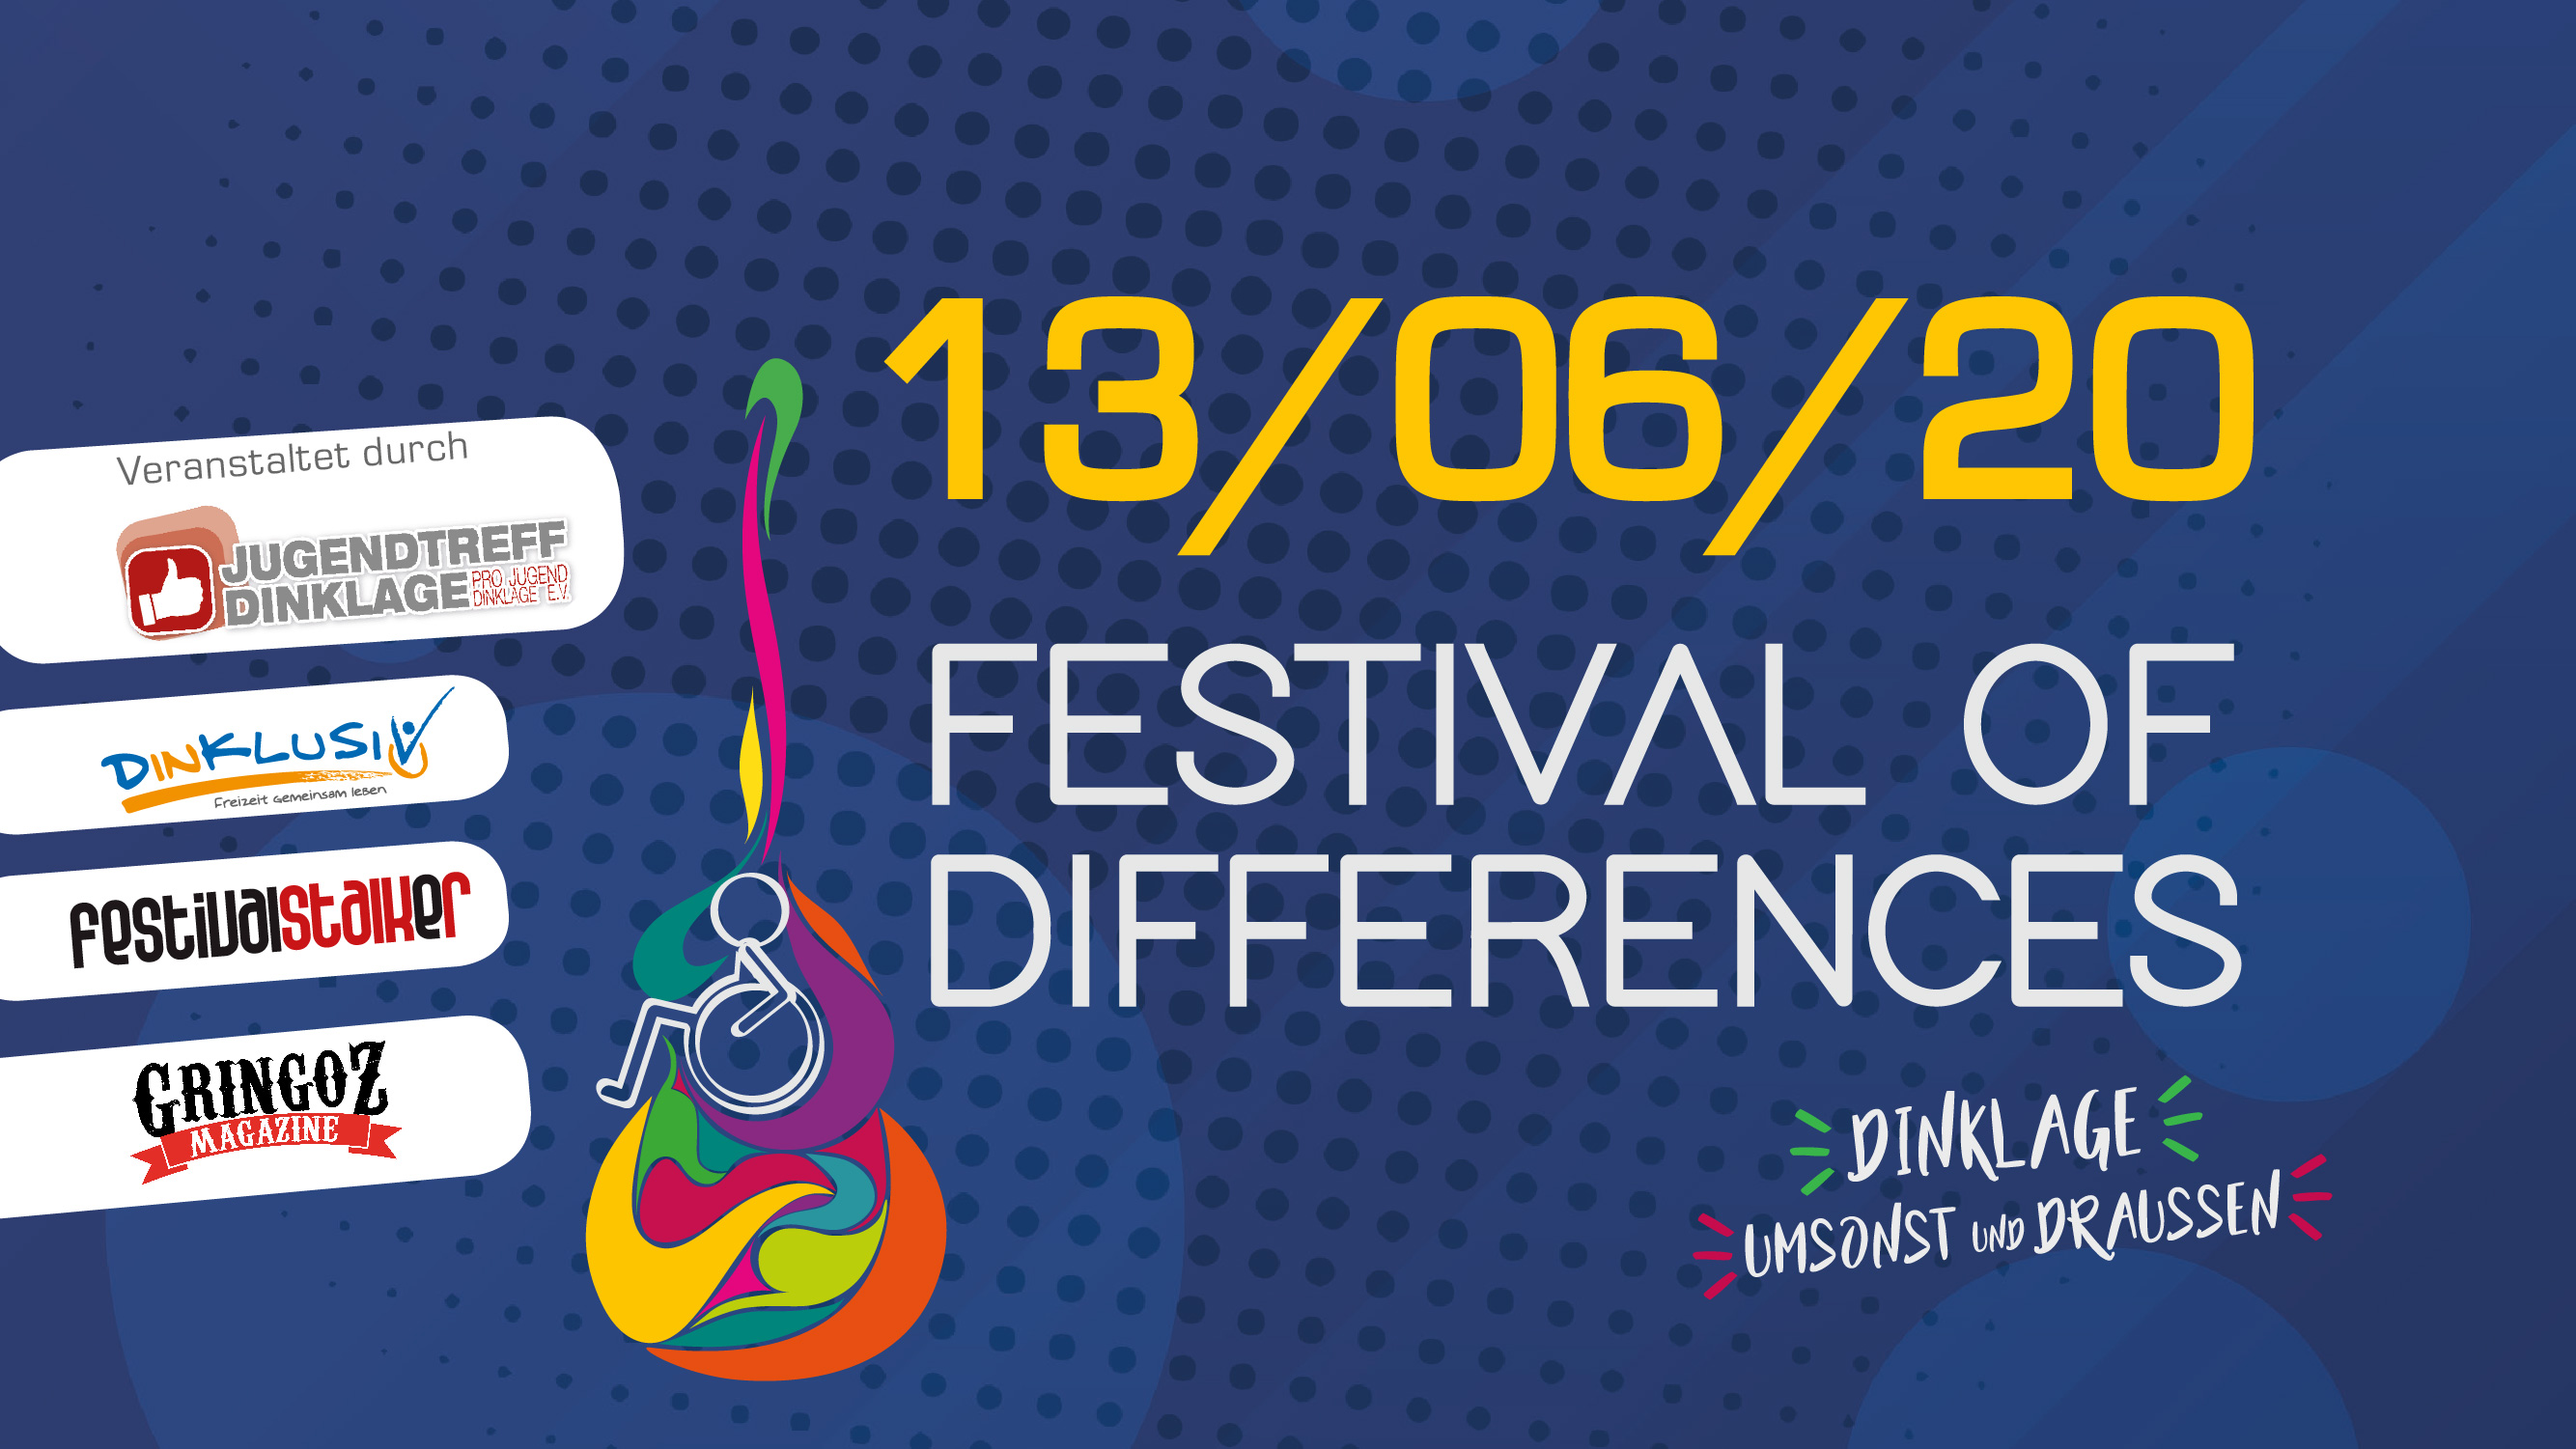 Festivalstalker kooperiert mit Festival of Differences